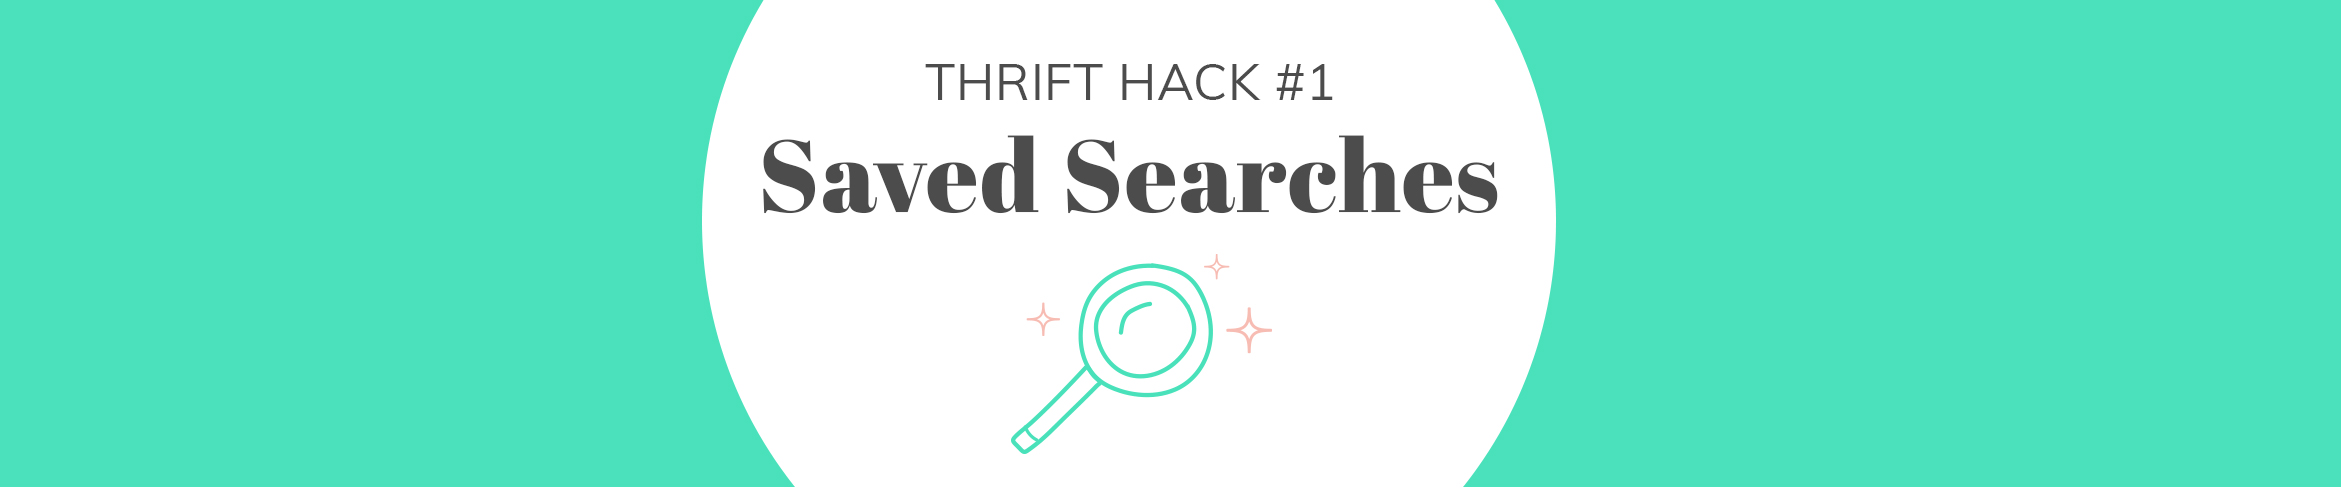 productEducation-thredit-headers-savedsearches